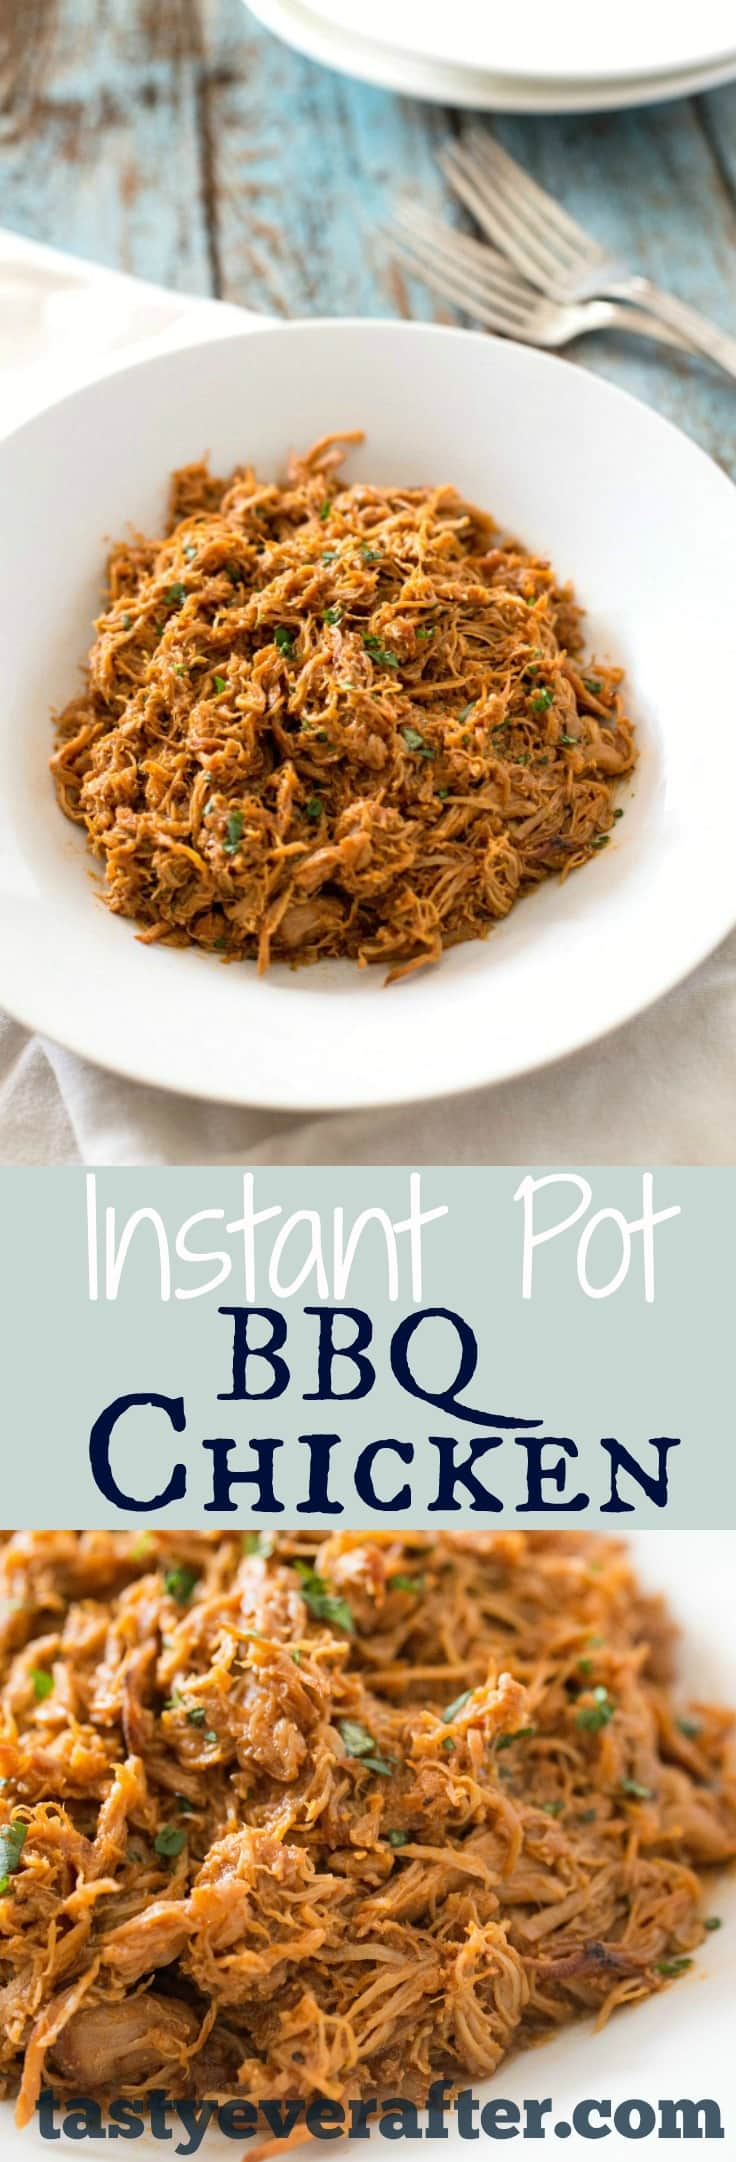 Instant Pot BBQ Chicken